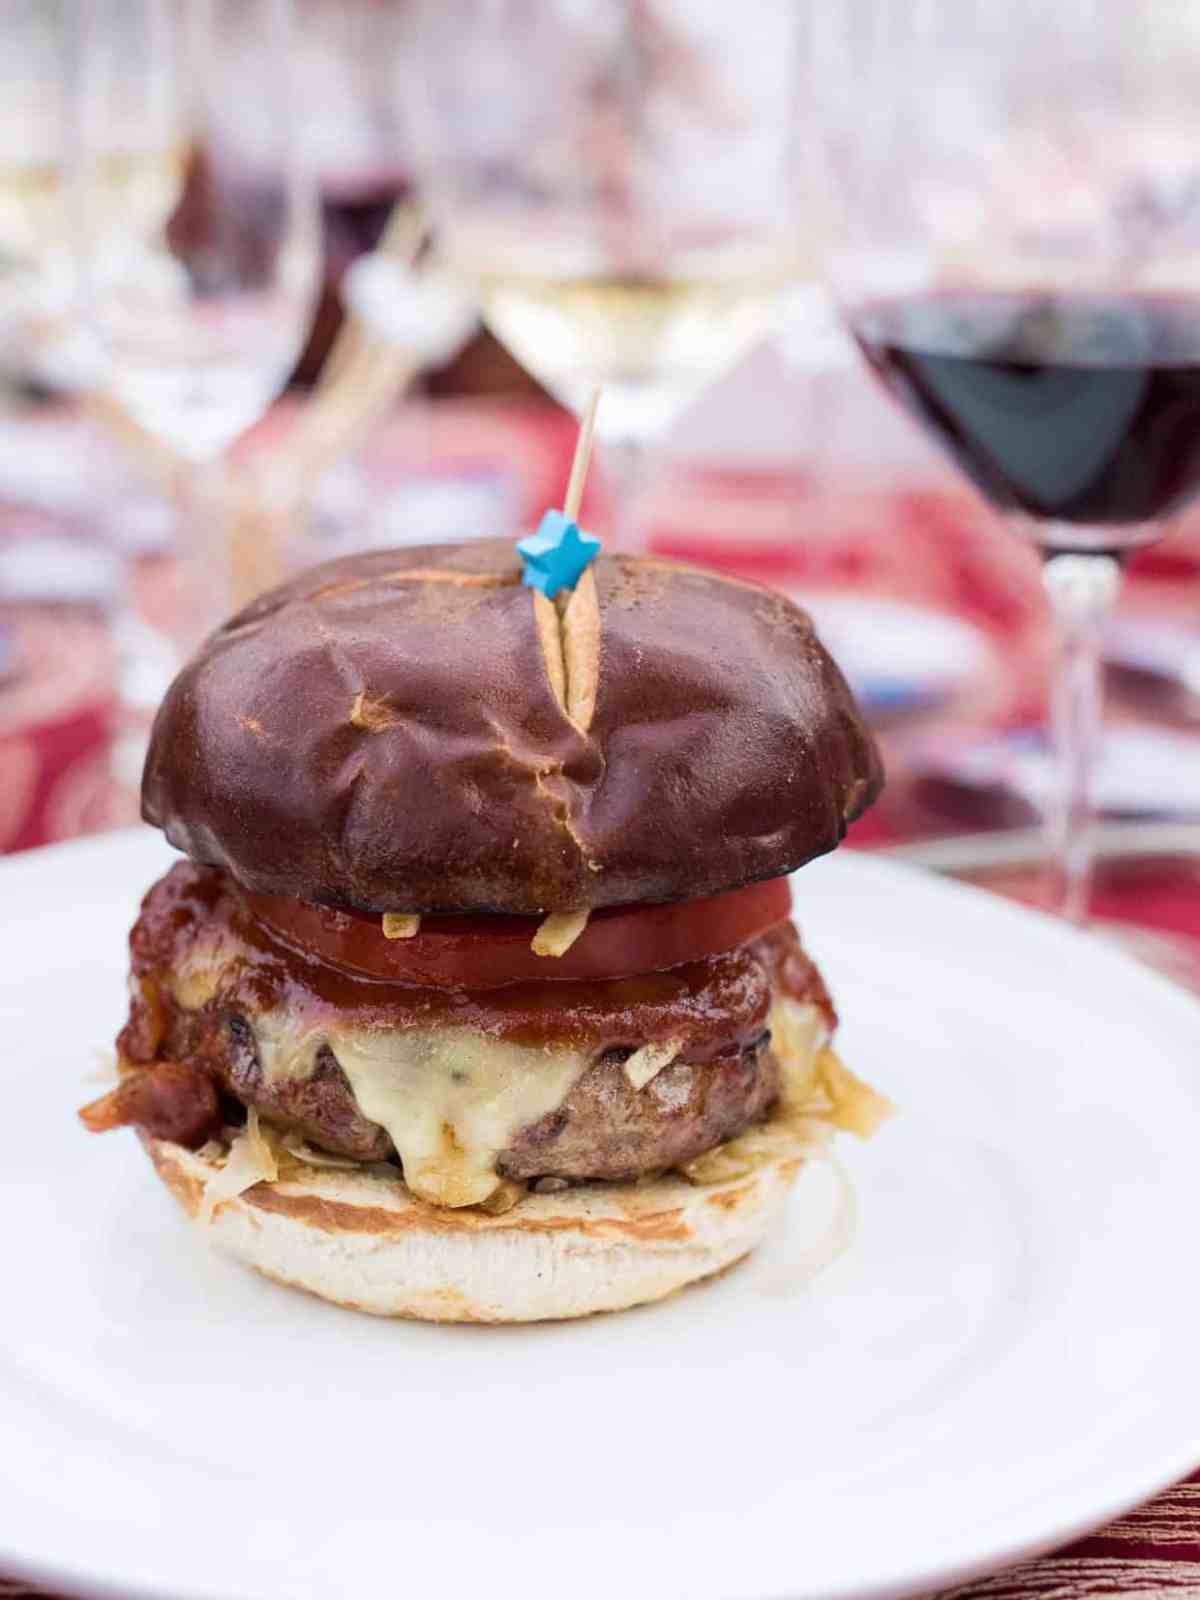 The Bratty Patty at the Sutter Home 25th Annual Build a Better Burger Cookoff.